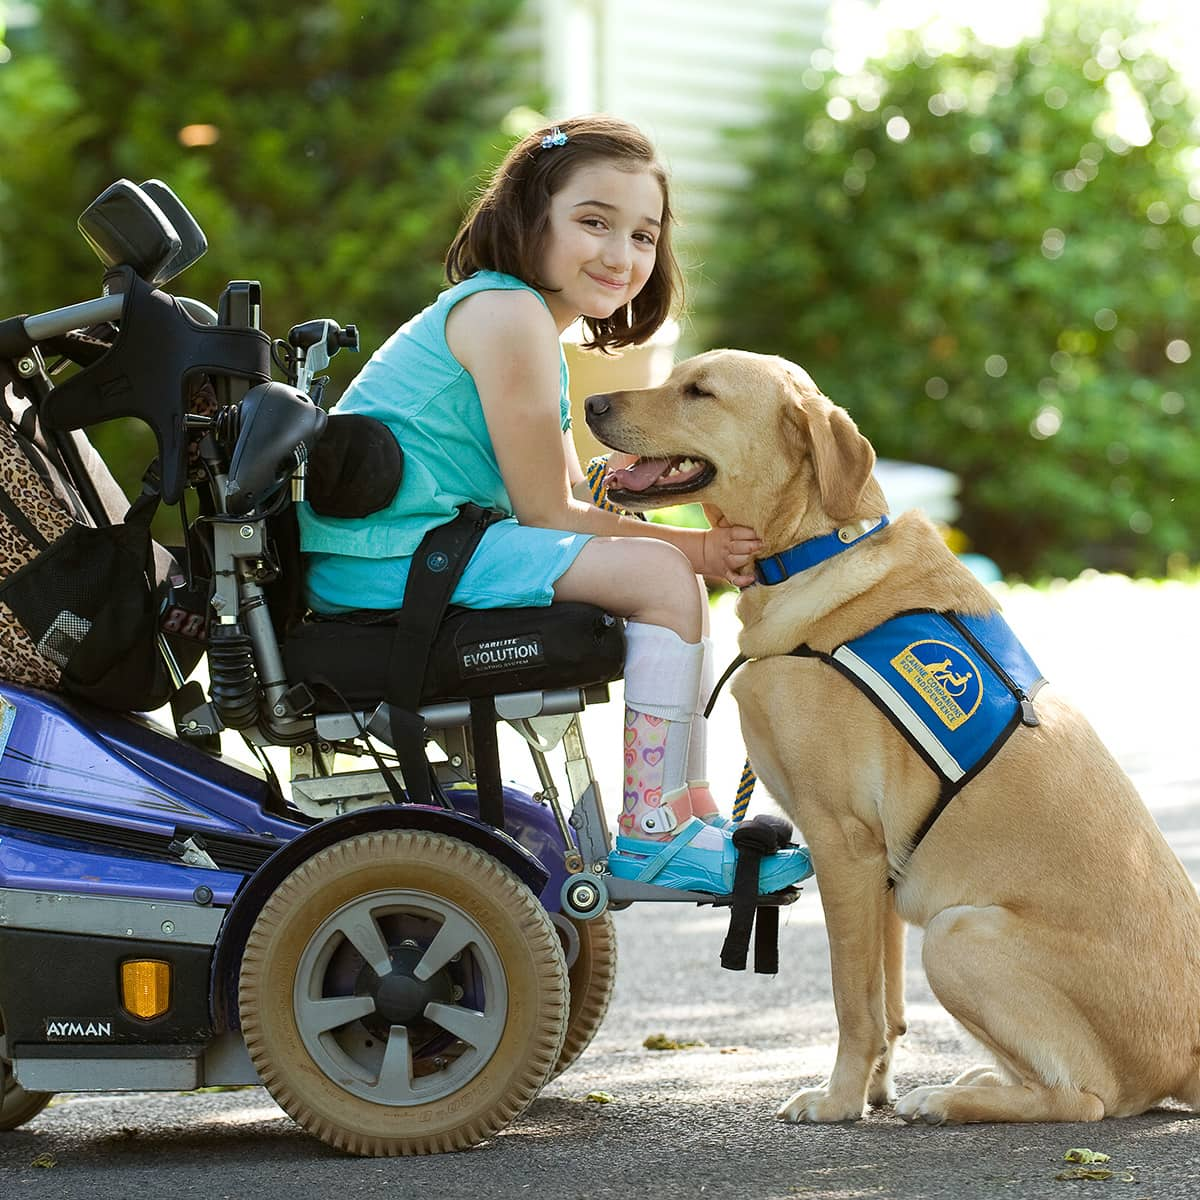 Bridget and Willy: She used to always ask her parents or siblings for help when she dropped something out of reach. But now she has an assistance dog, Willy, to help her. Her dad says some of her proudest moments are when she takes care of Willy.